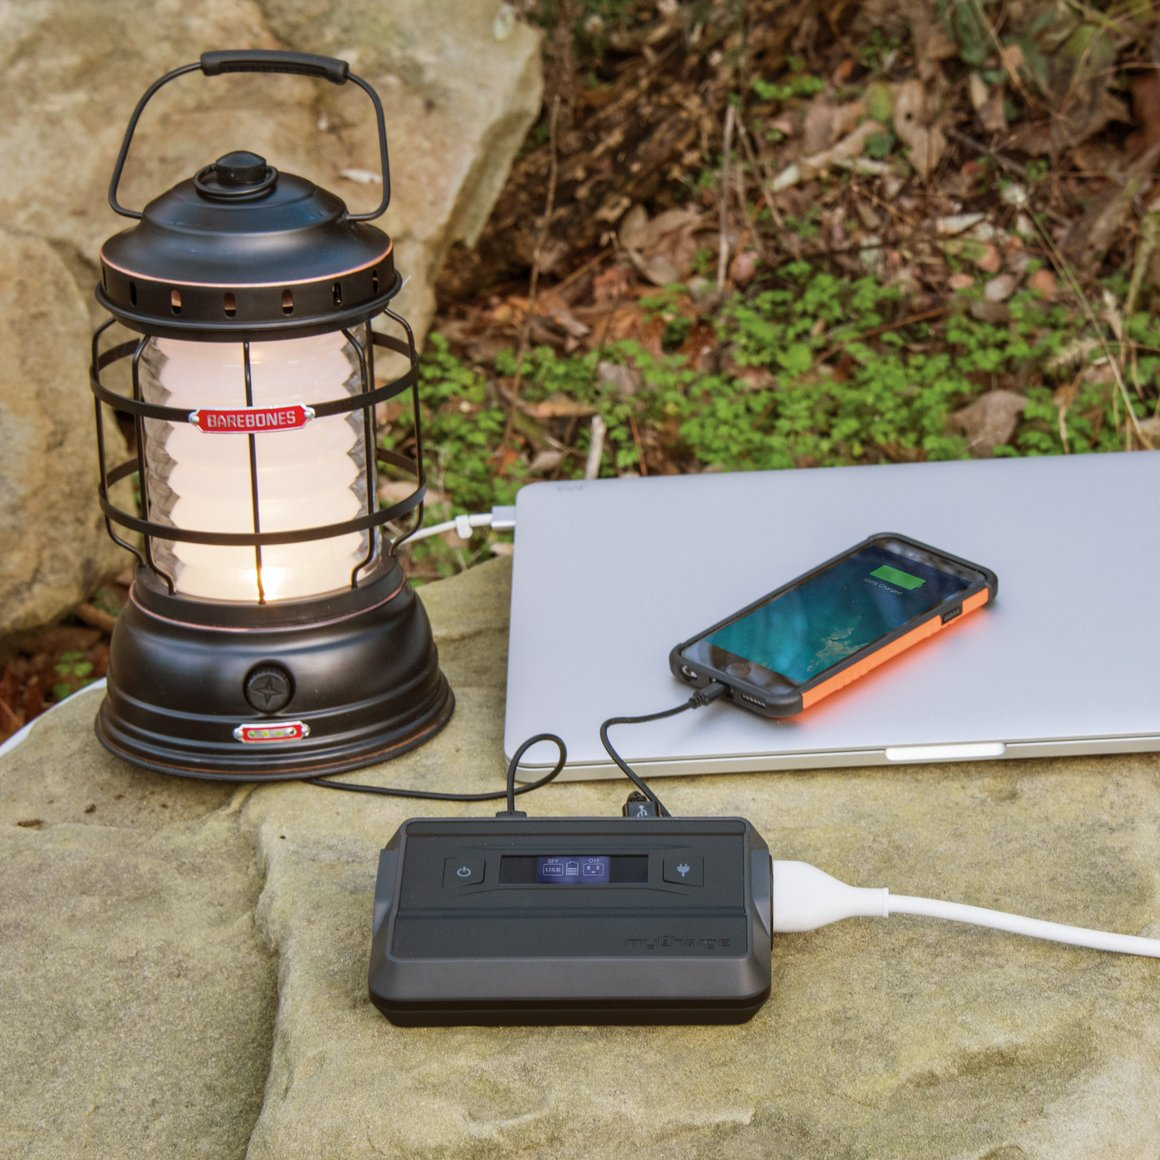 myCharge portable charger AdventureUltra, bringing you power wherever you are.